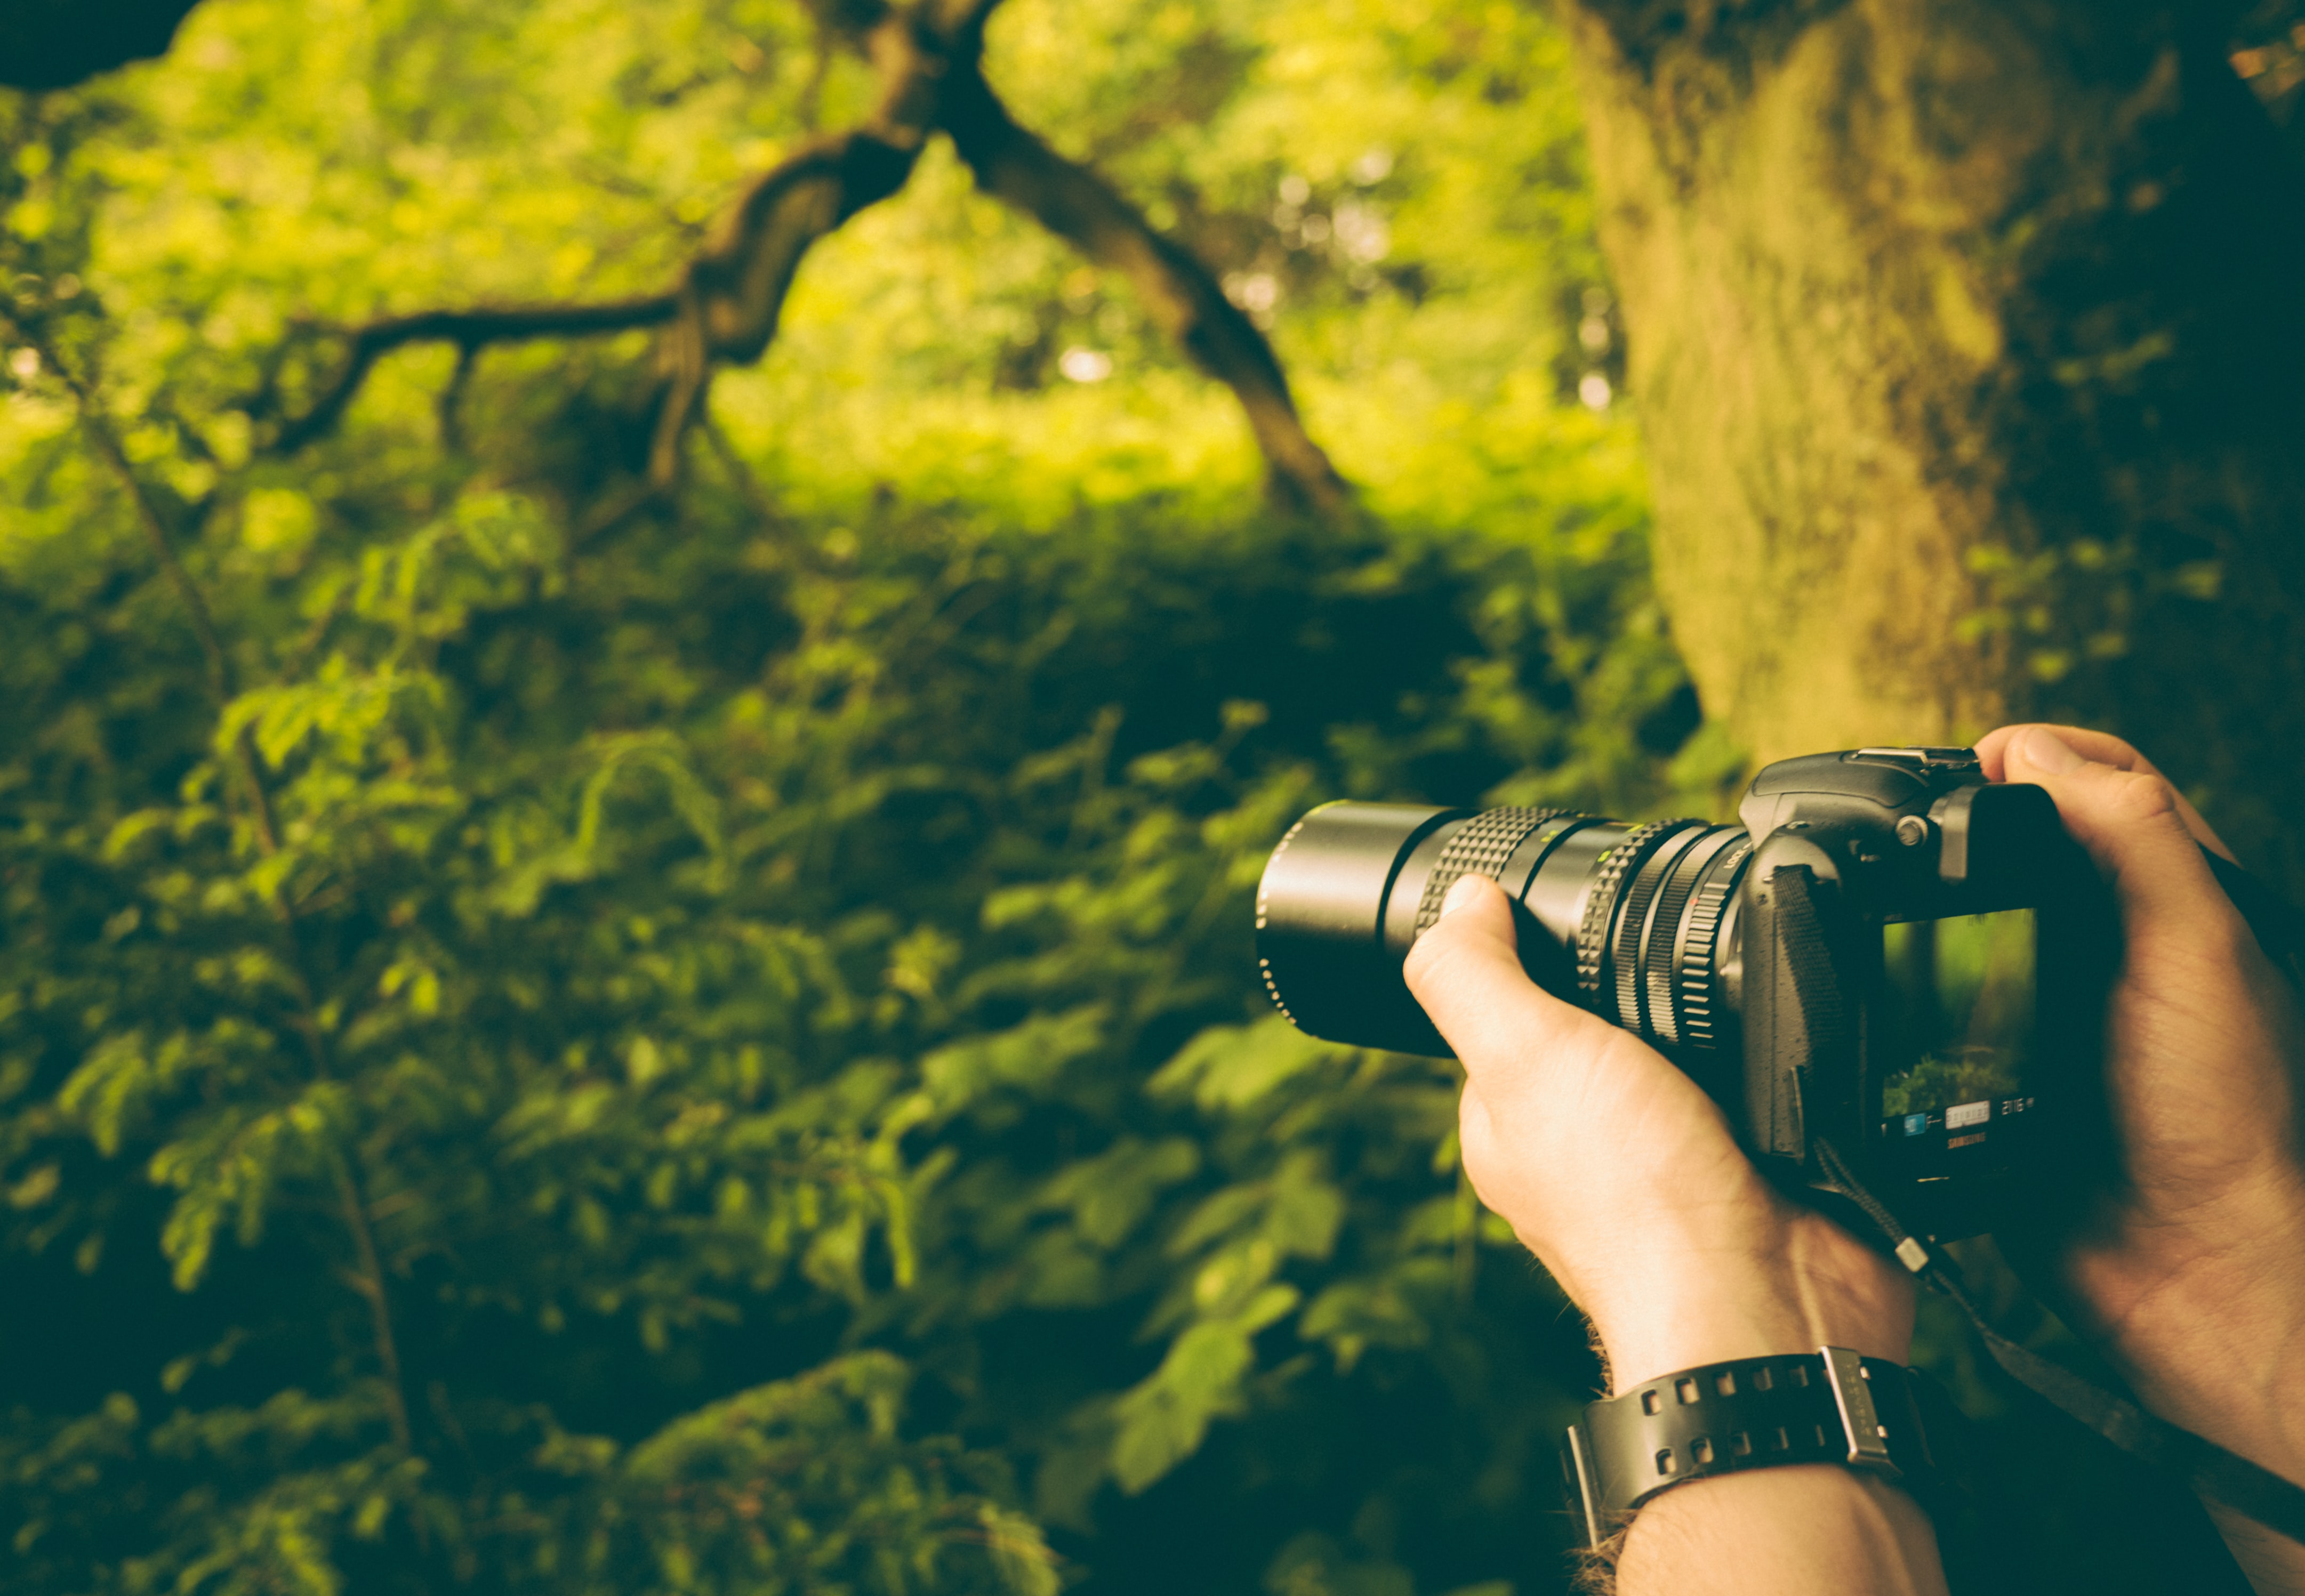 Man wearing a watch taking a photo of nature in the forest